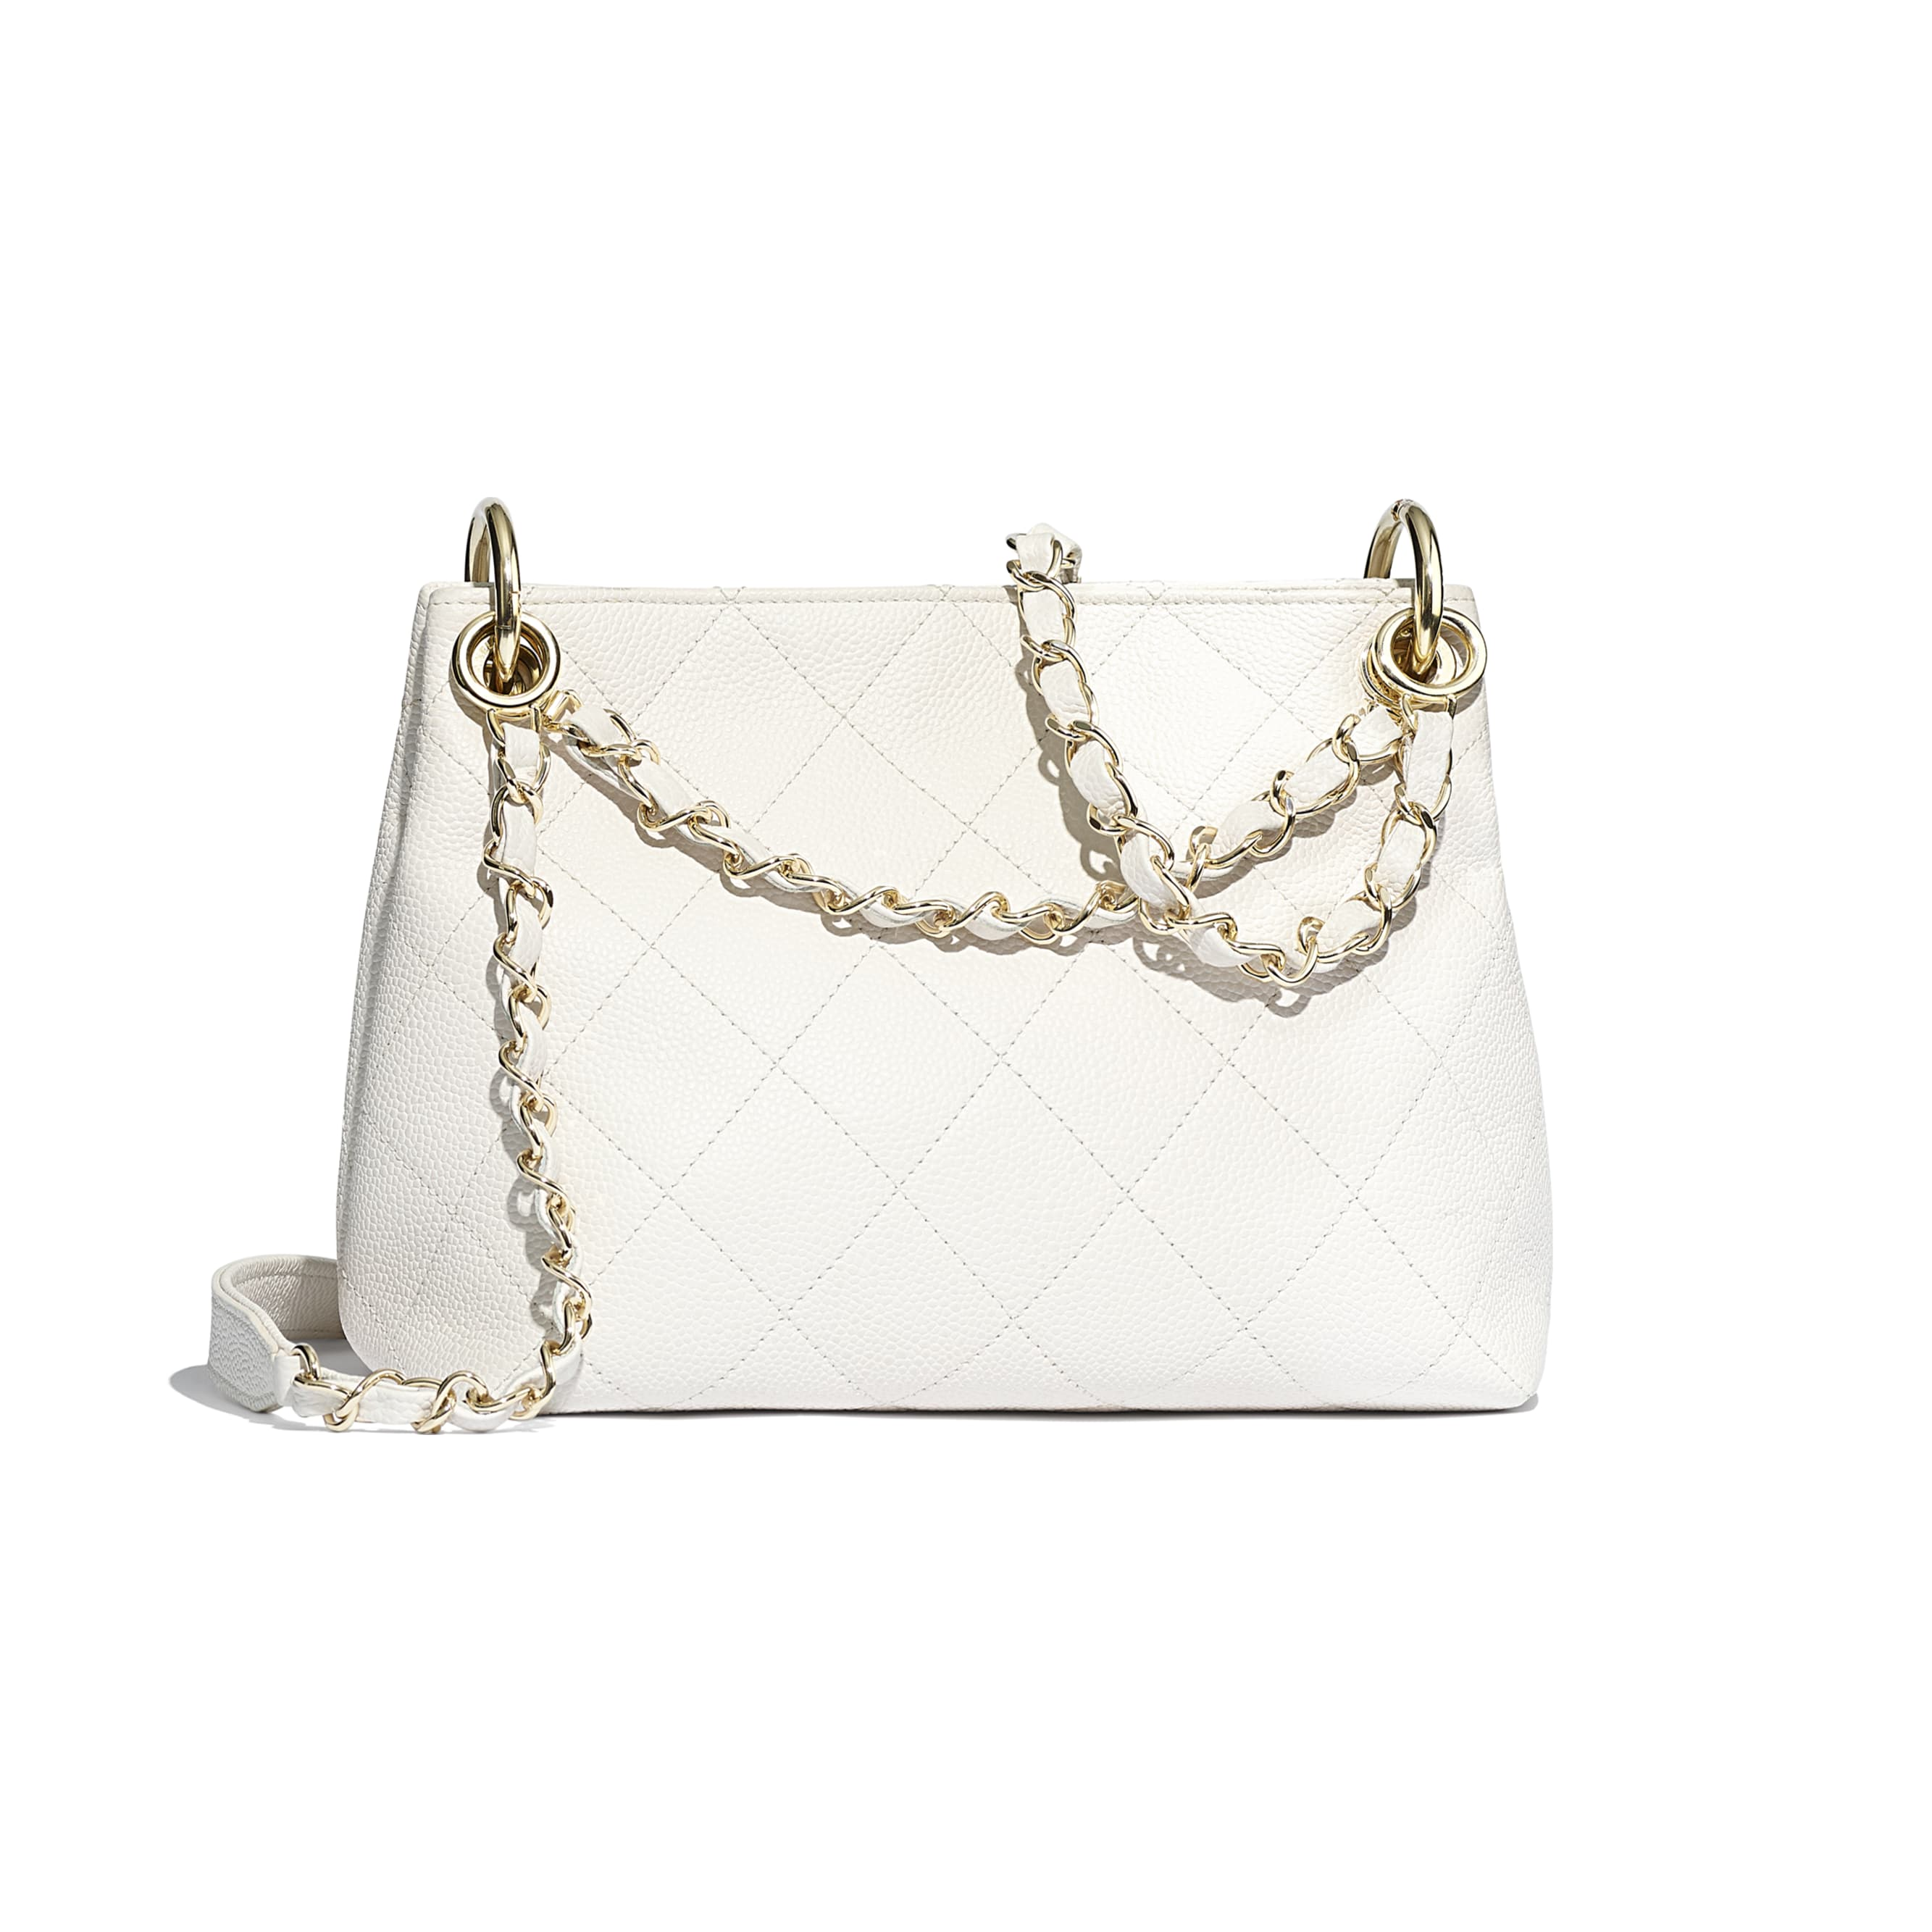 Small Hobo Bag - White - Grained Calfskin & Gold-Tone Metal - CHANEL - Alternative view - see standard sized version